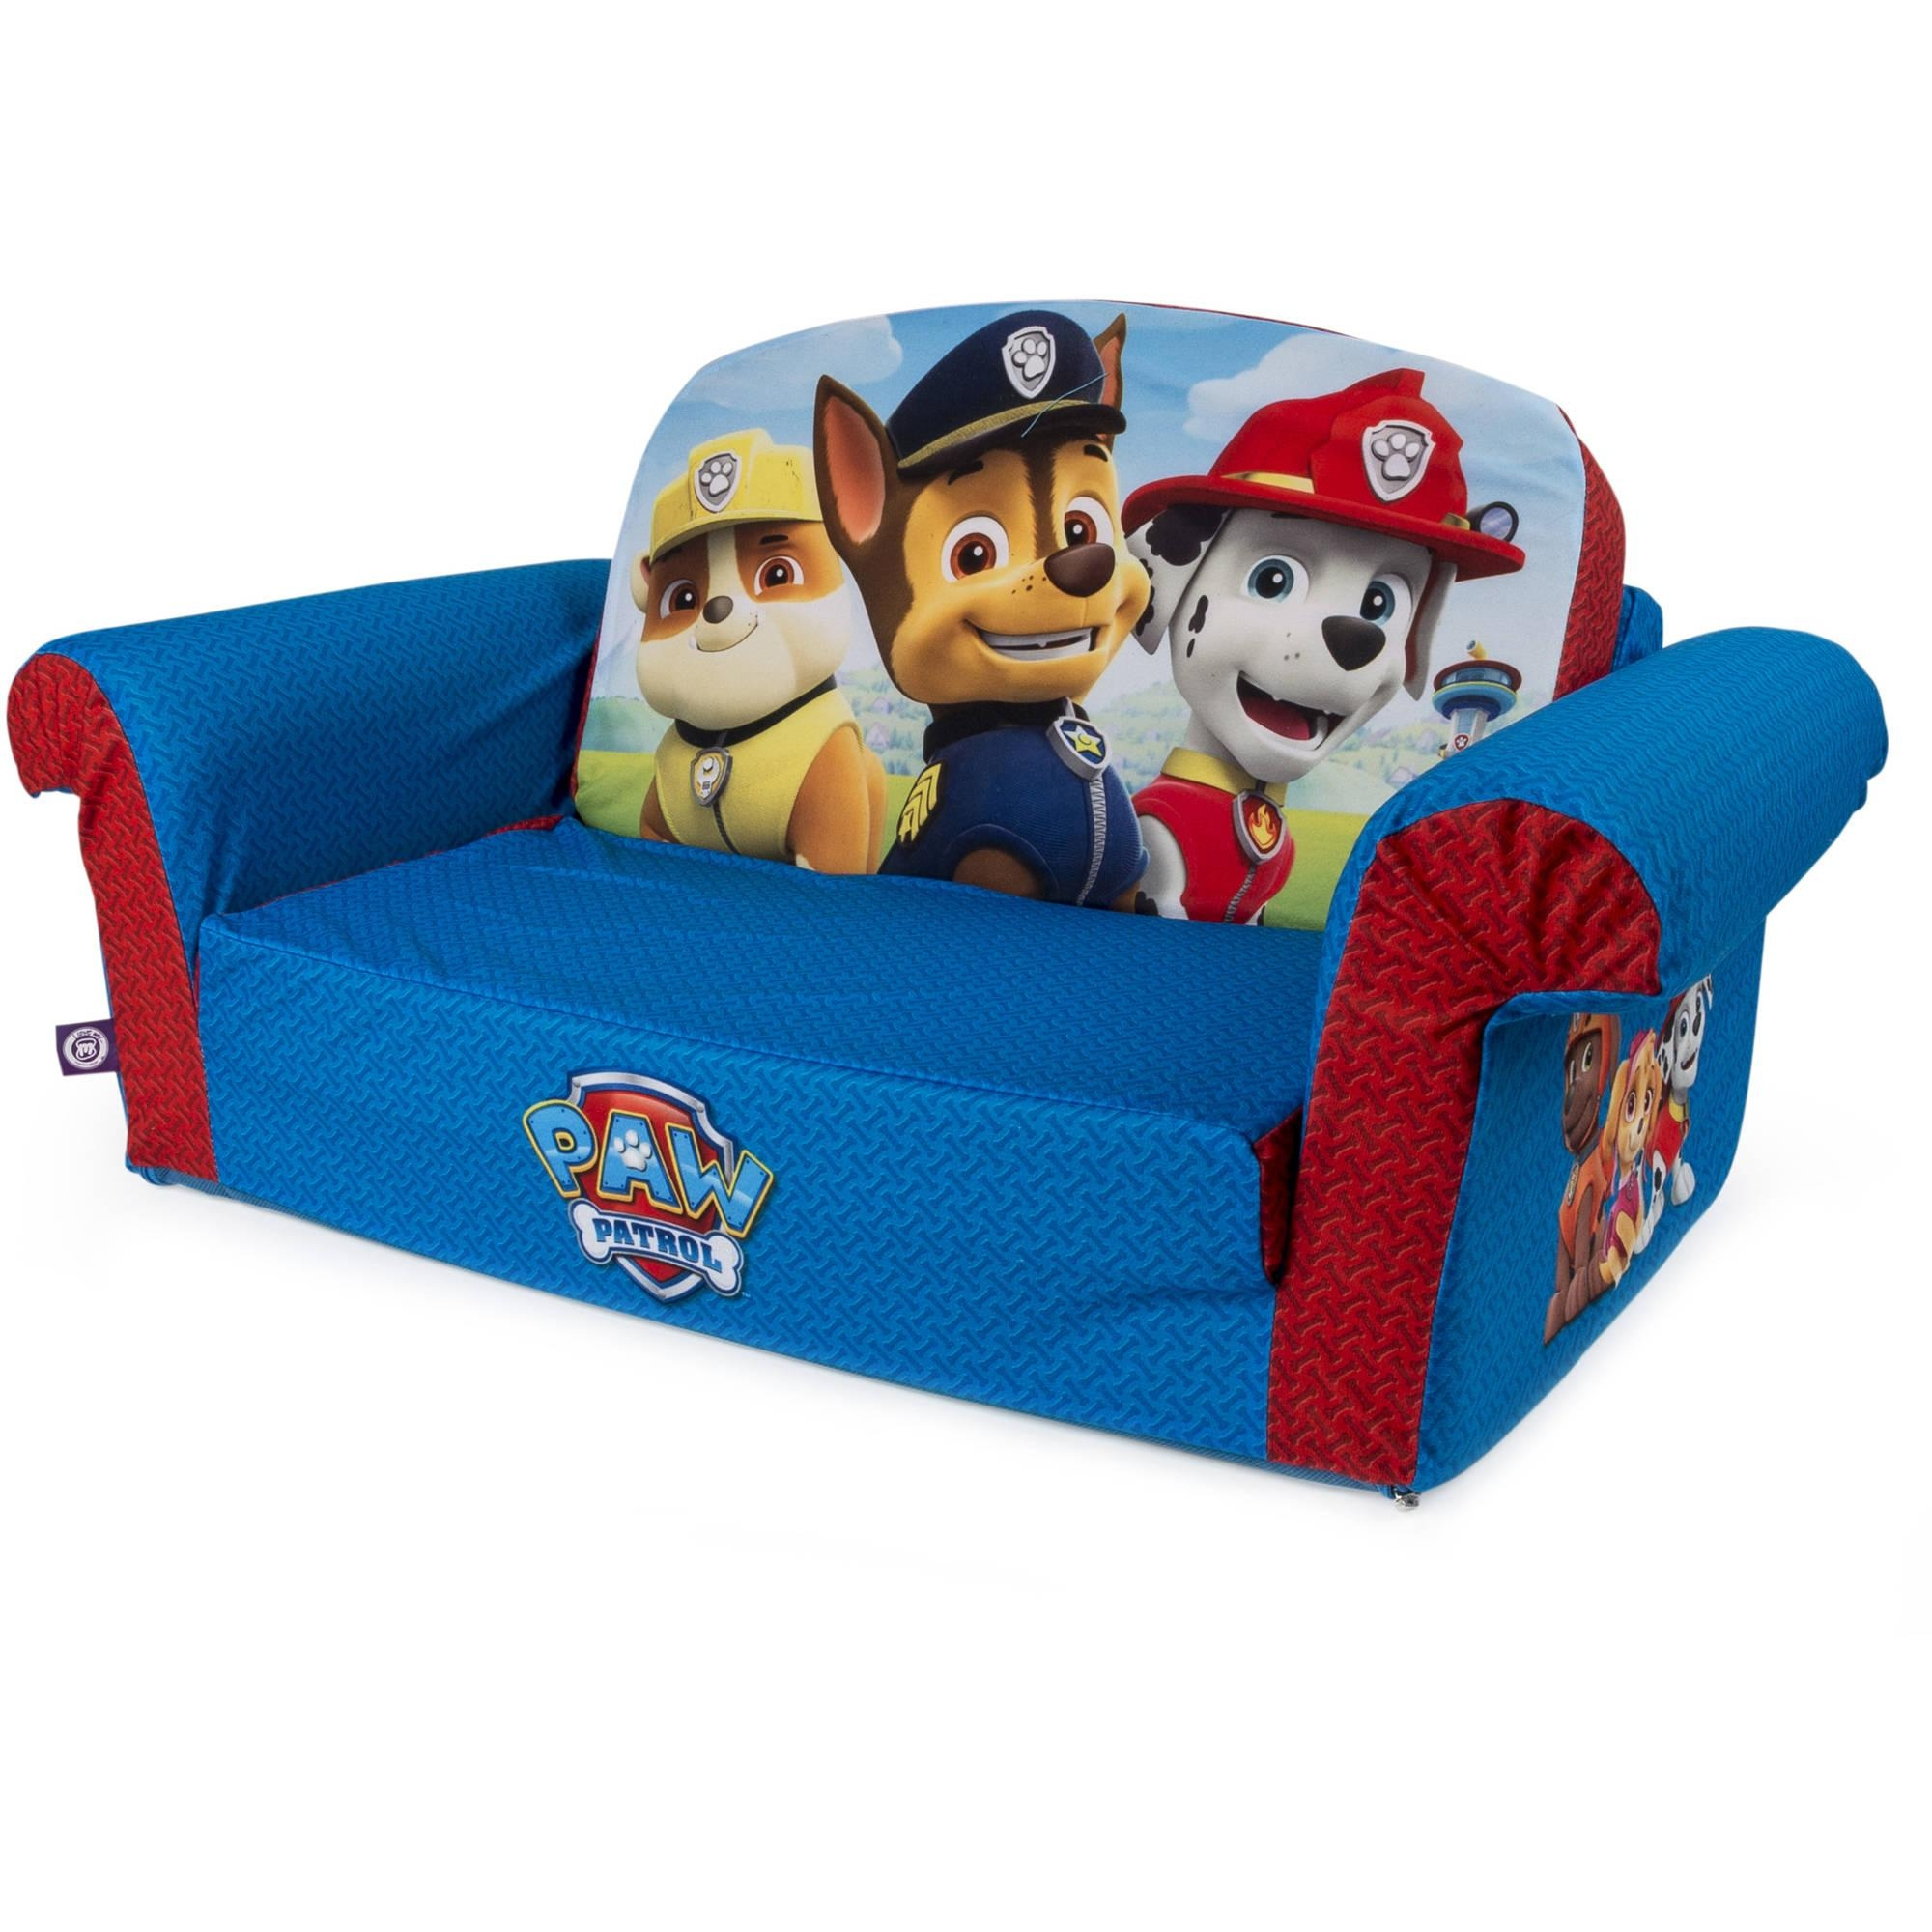 Marshmallow Furniture, Children's 2 In 1 Flip Open Foam Sofa Inside Flip Out Sofa For Kids (Image 14 of 20)